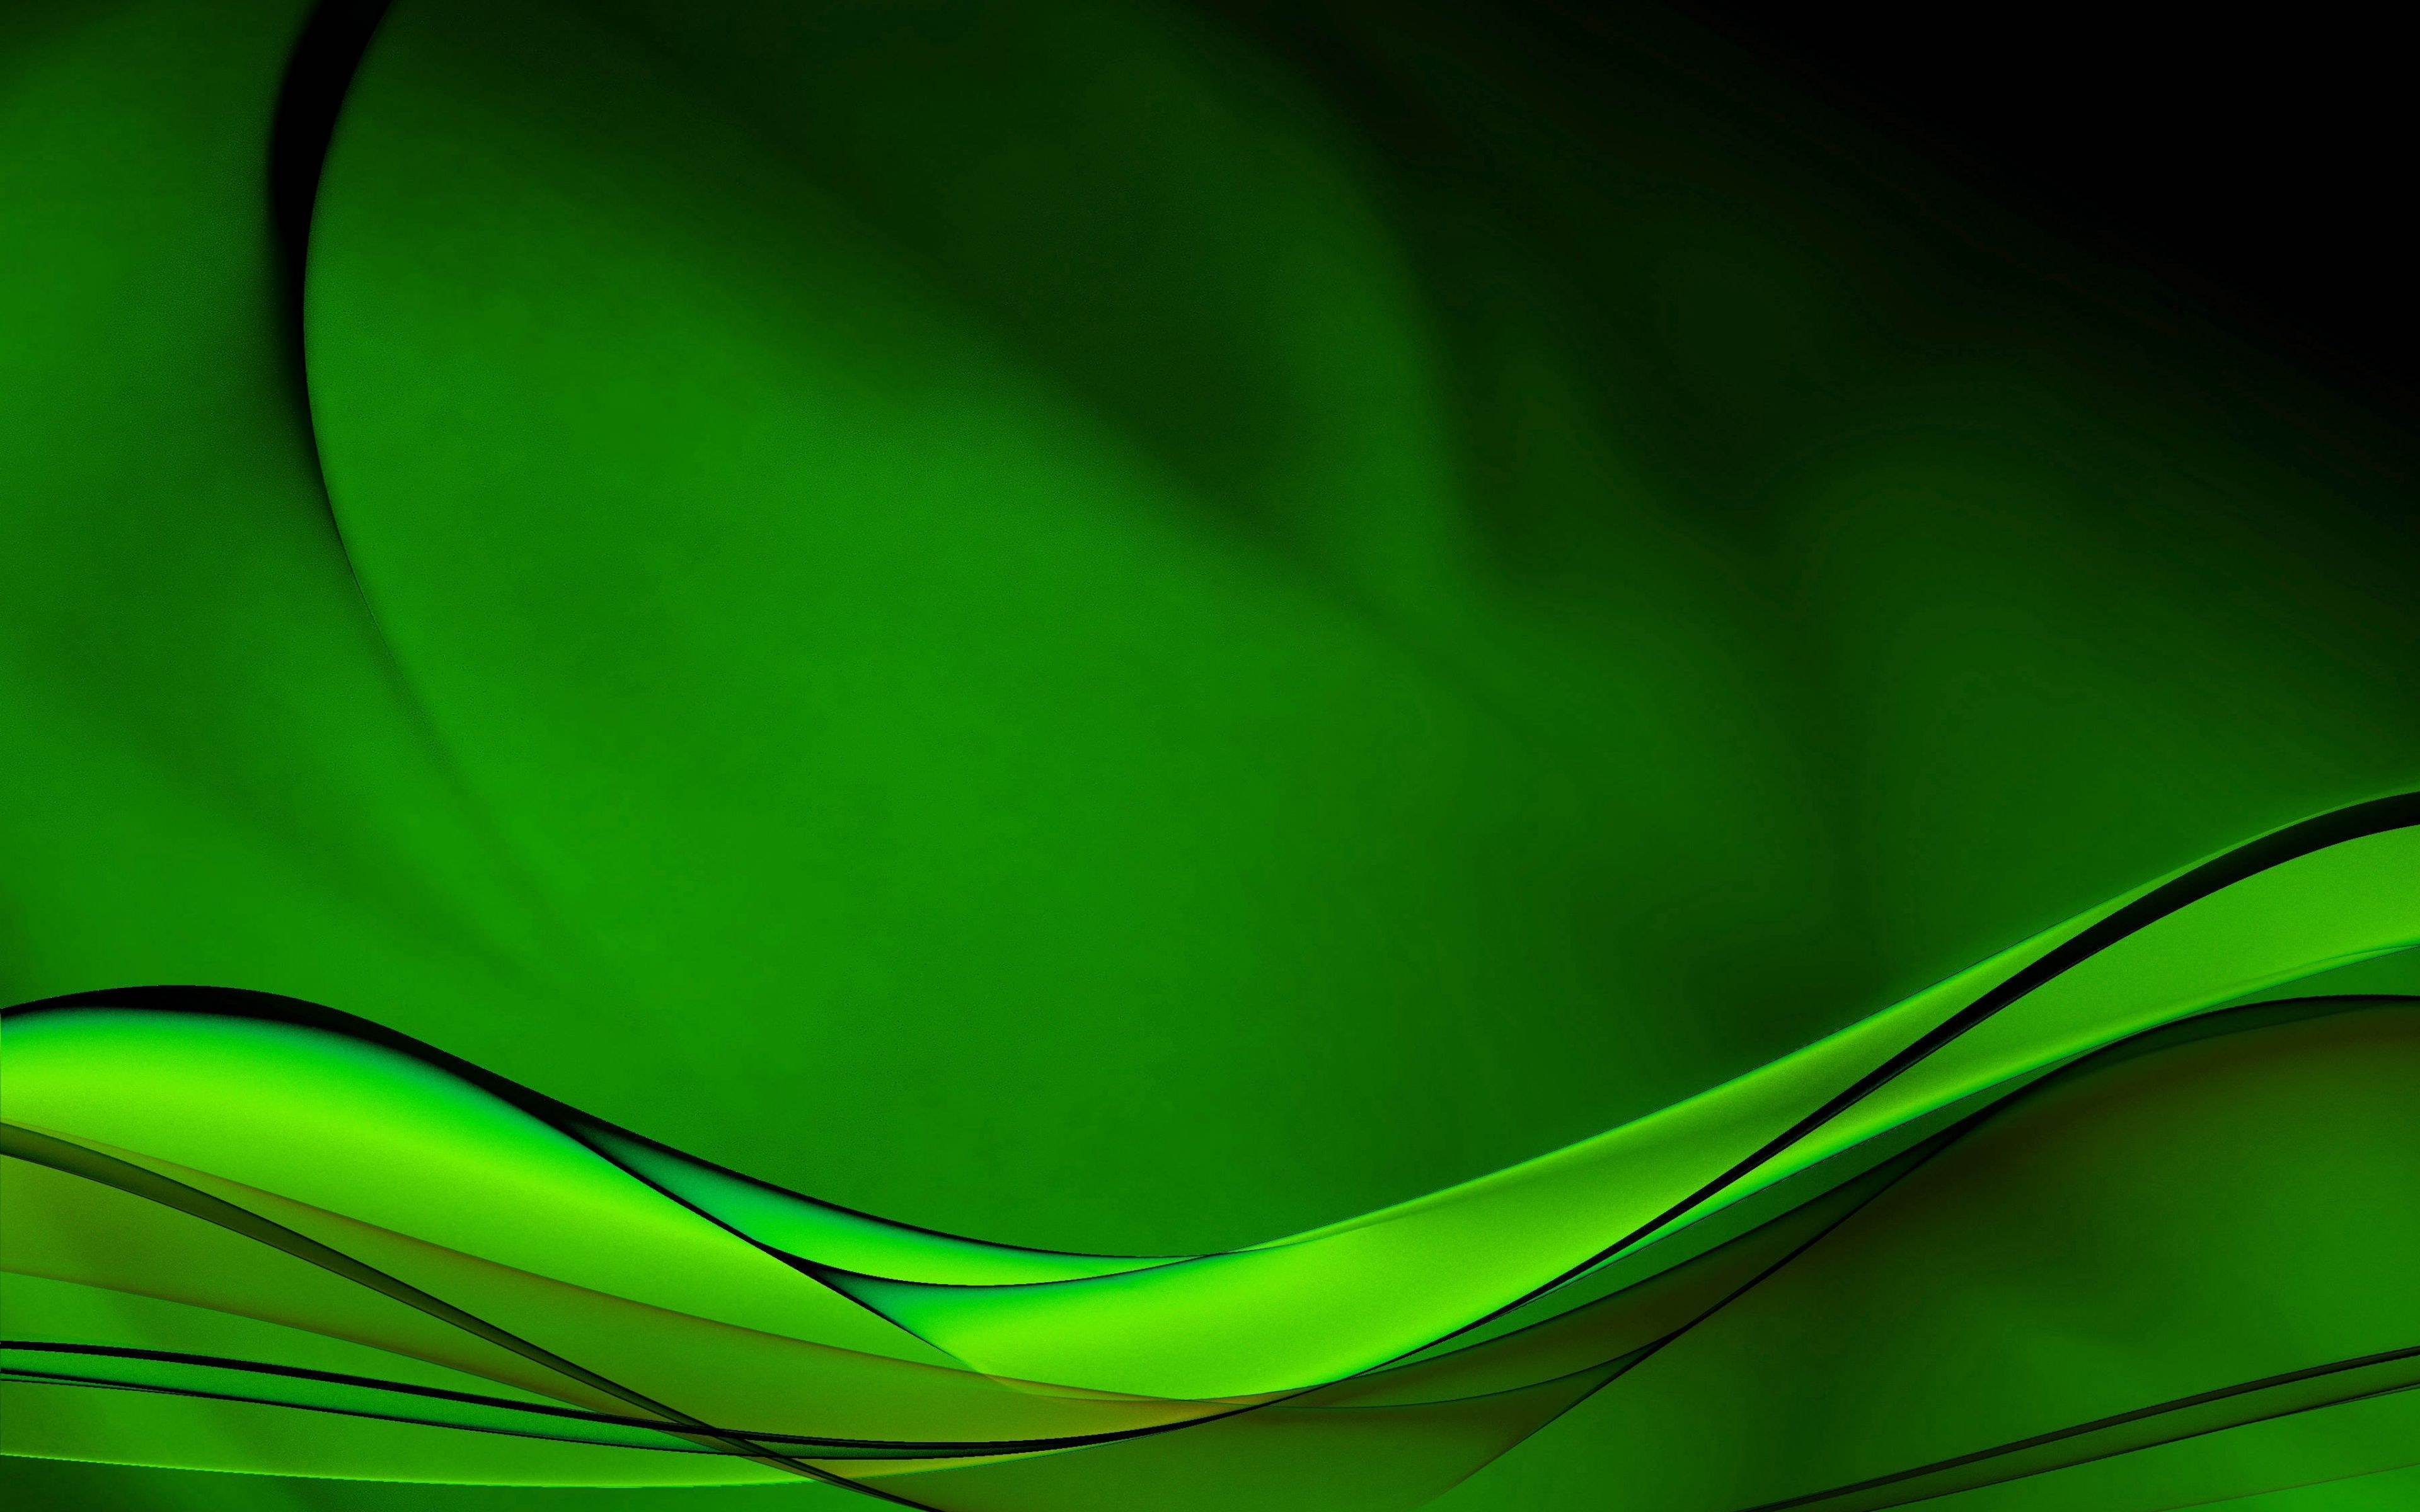 green-hd-background